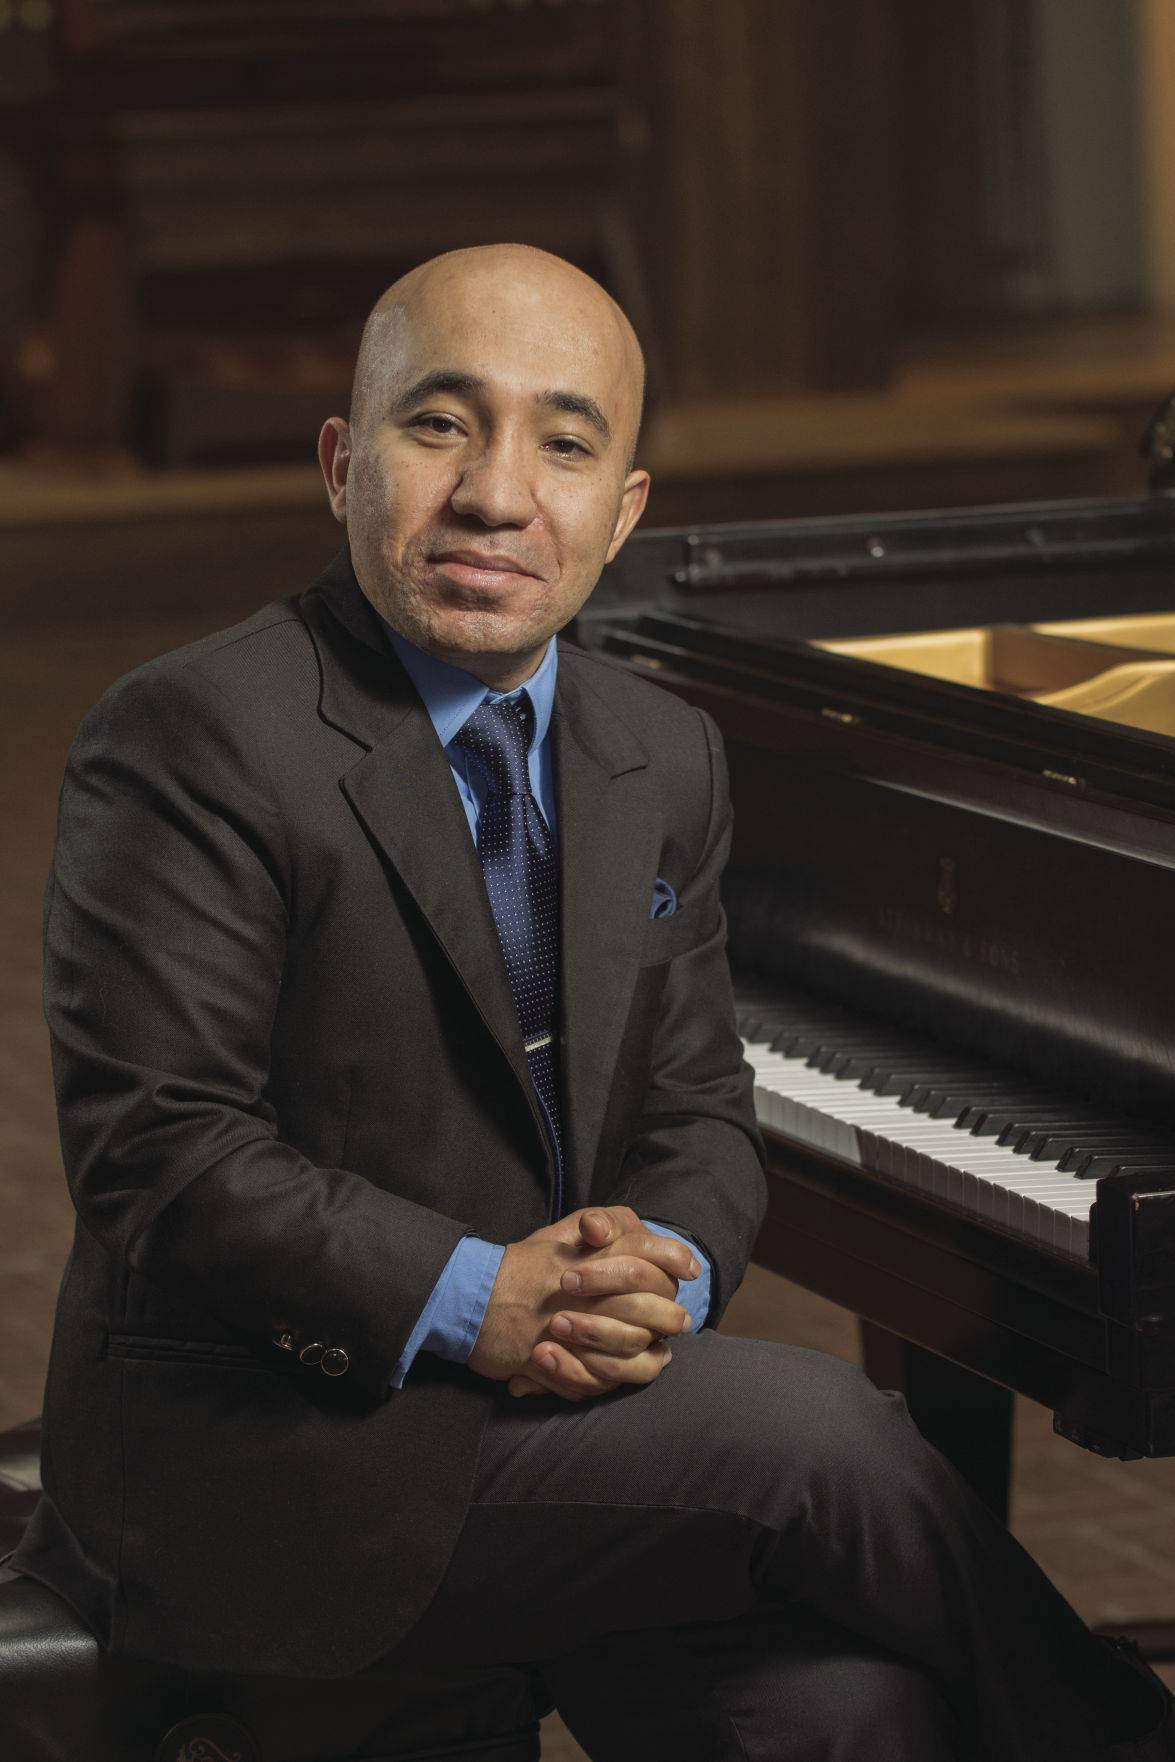 Egyptian pianist Wael Farouk is the featured soloist with the Lake Forest Symphony.